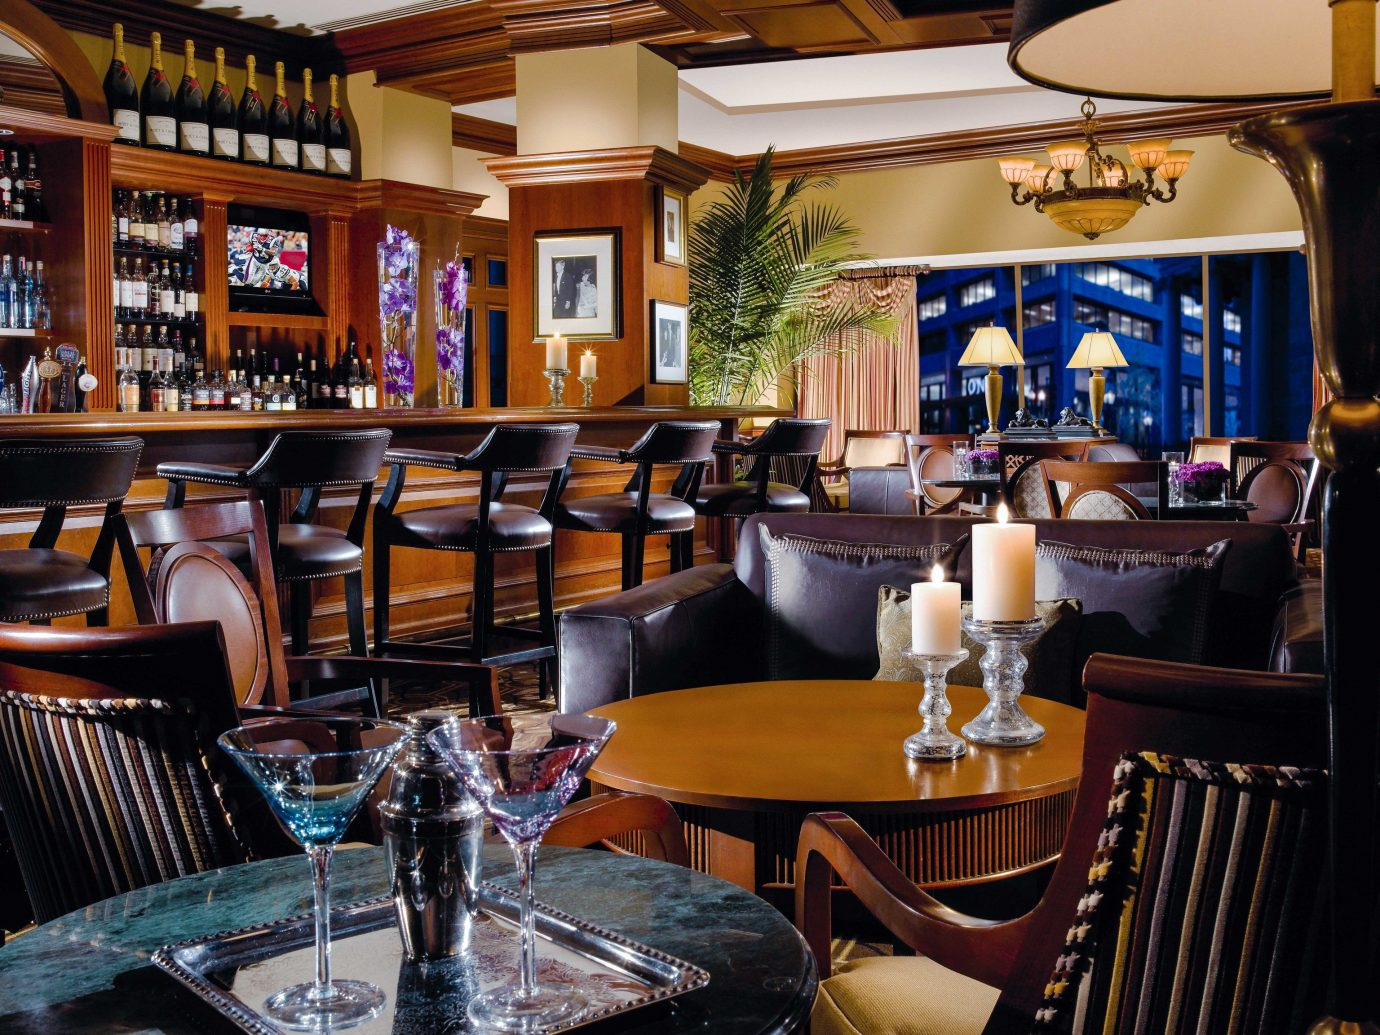 Hotels table indoor chair restaurant Dining room Bar interior design café coffeehouse furniture area set dining table